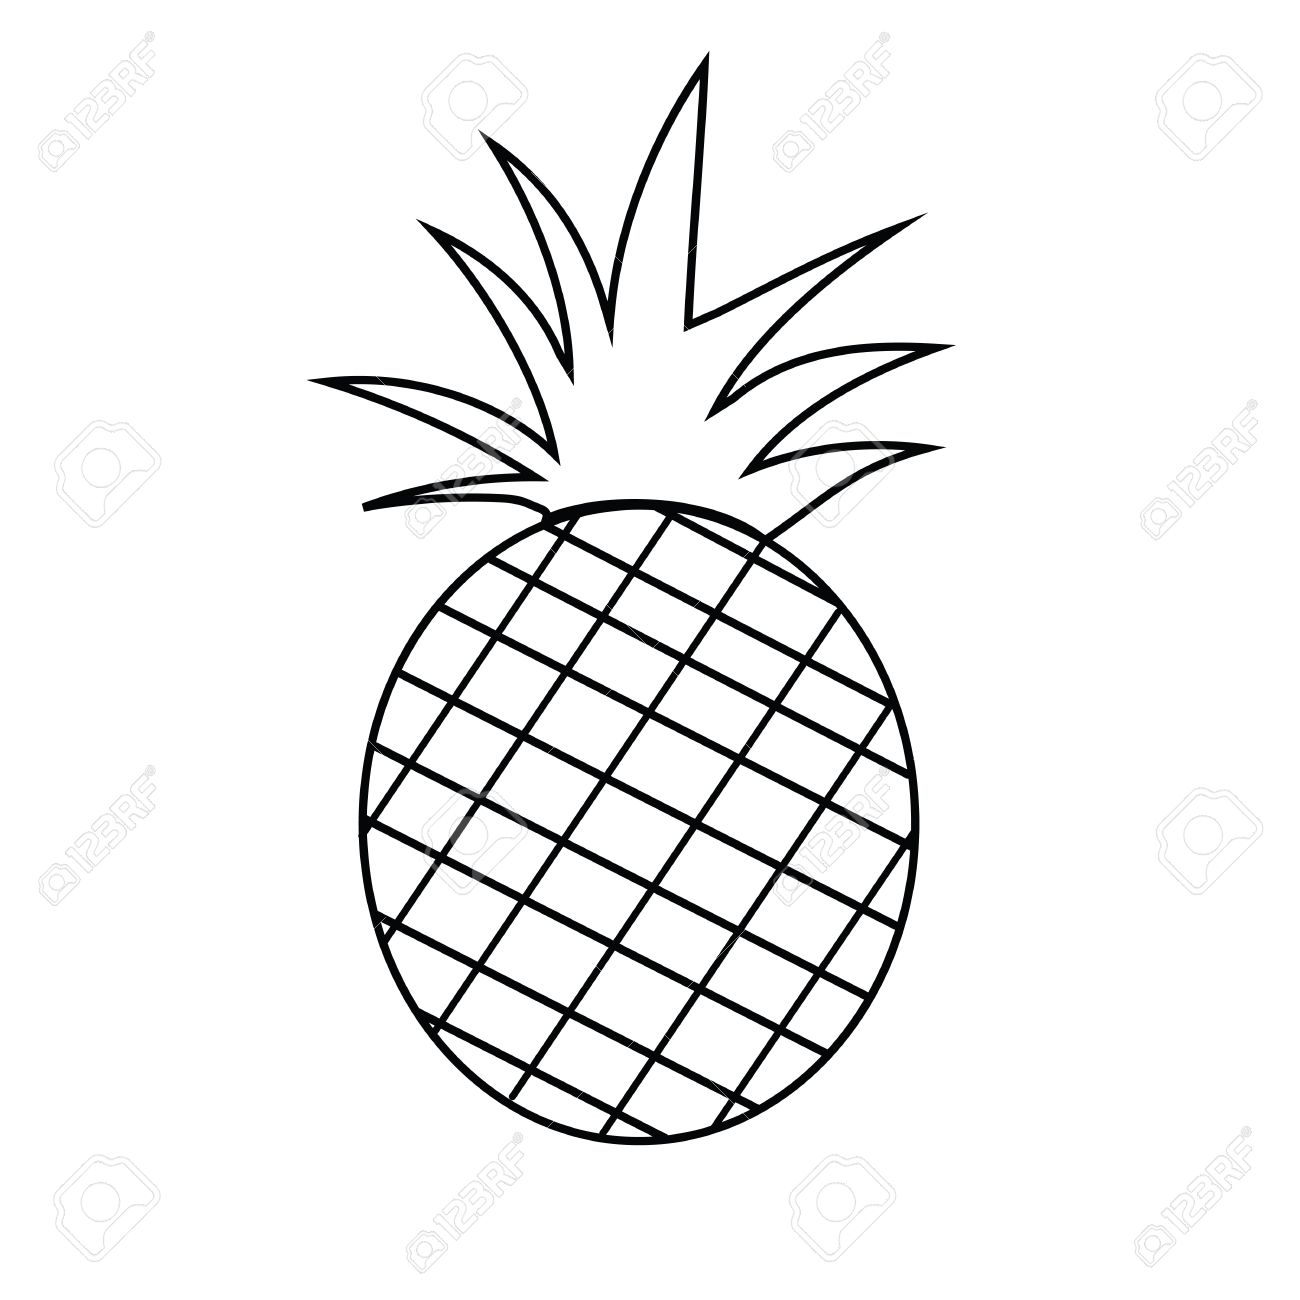 Pineapple Fruit Outline Version For Coloring Book Vector ... for Clipart Pineapple Black And White  45gtk